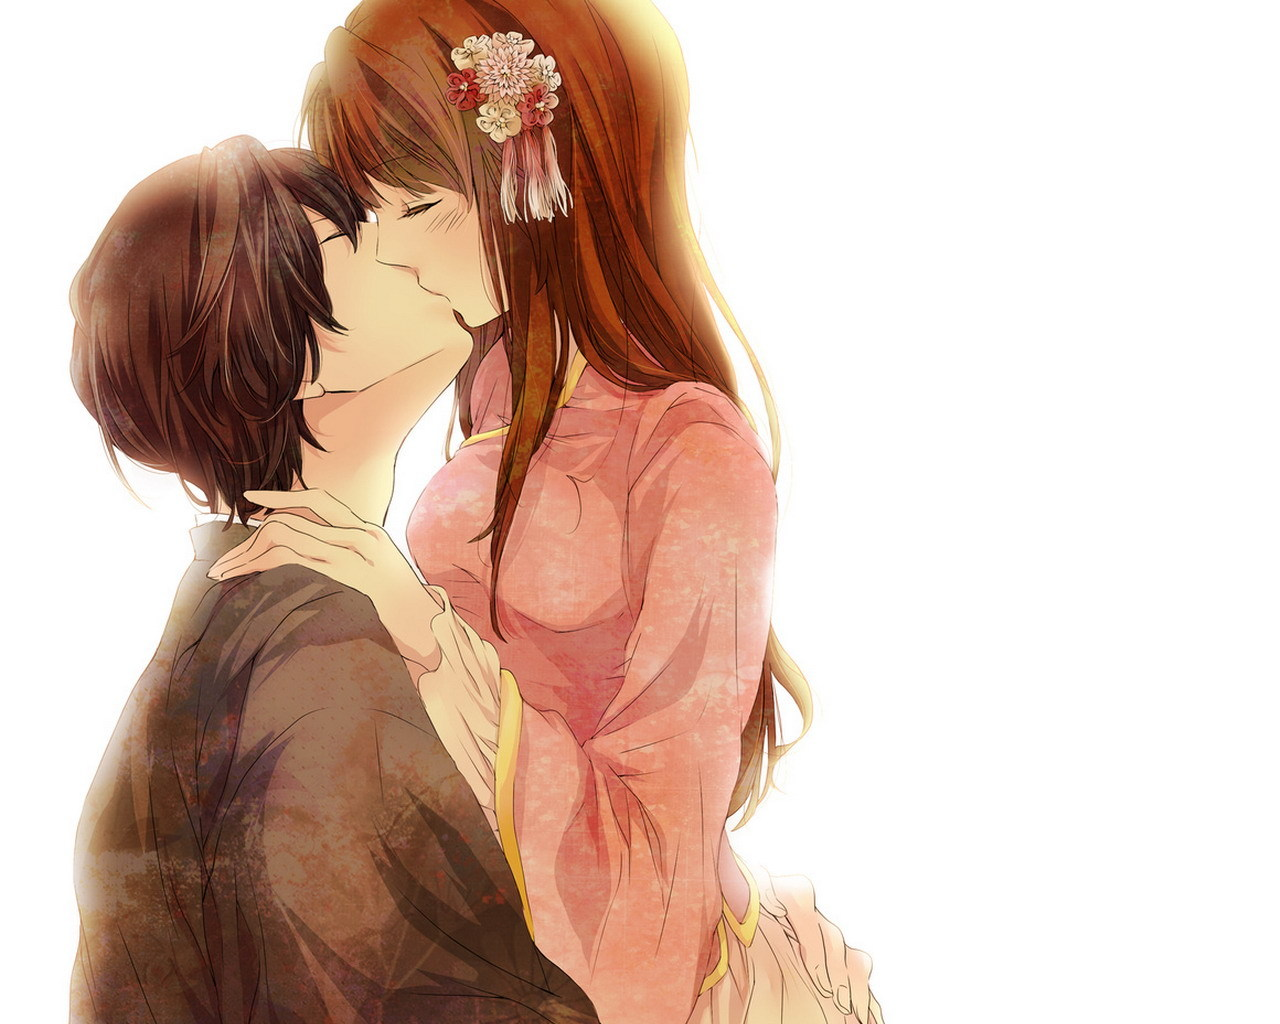 Image - Anime-Love-Couple-Kissing-Wallpaper jpg | Bleach RP Wiki